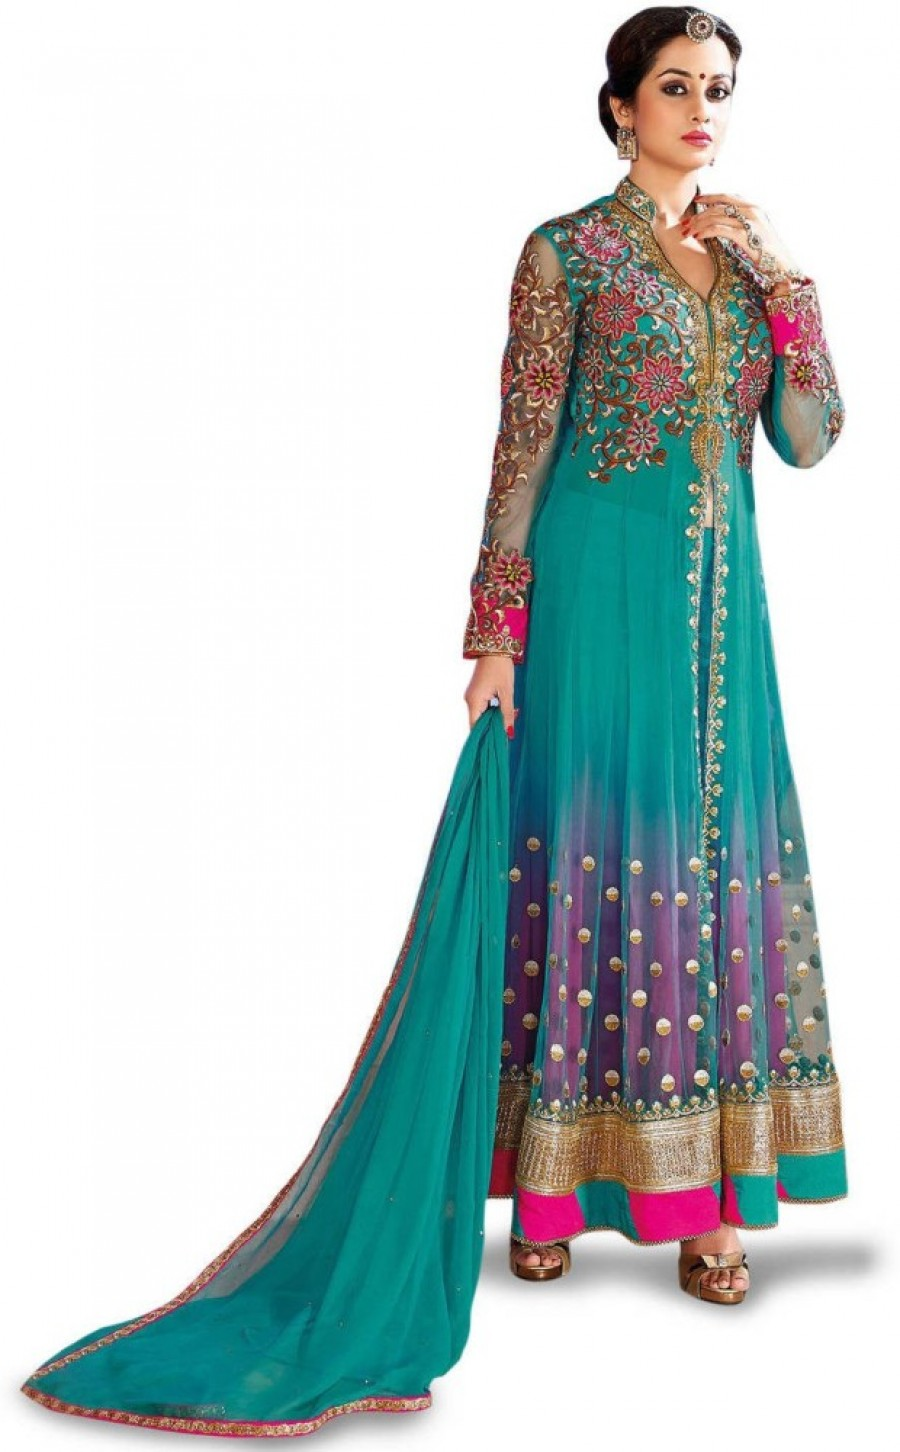 Salwar Kameez Online Shopping | Indian Designer Salwar Churidar Suits